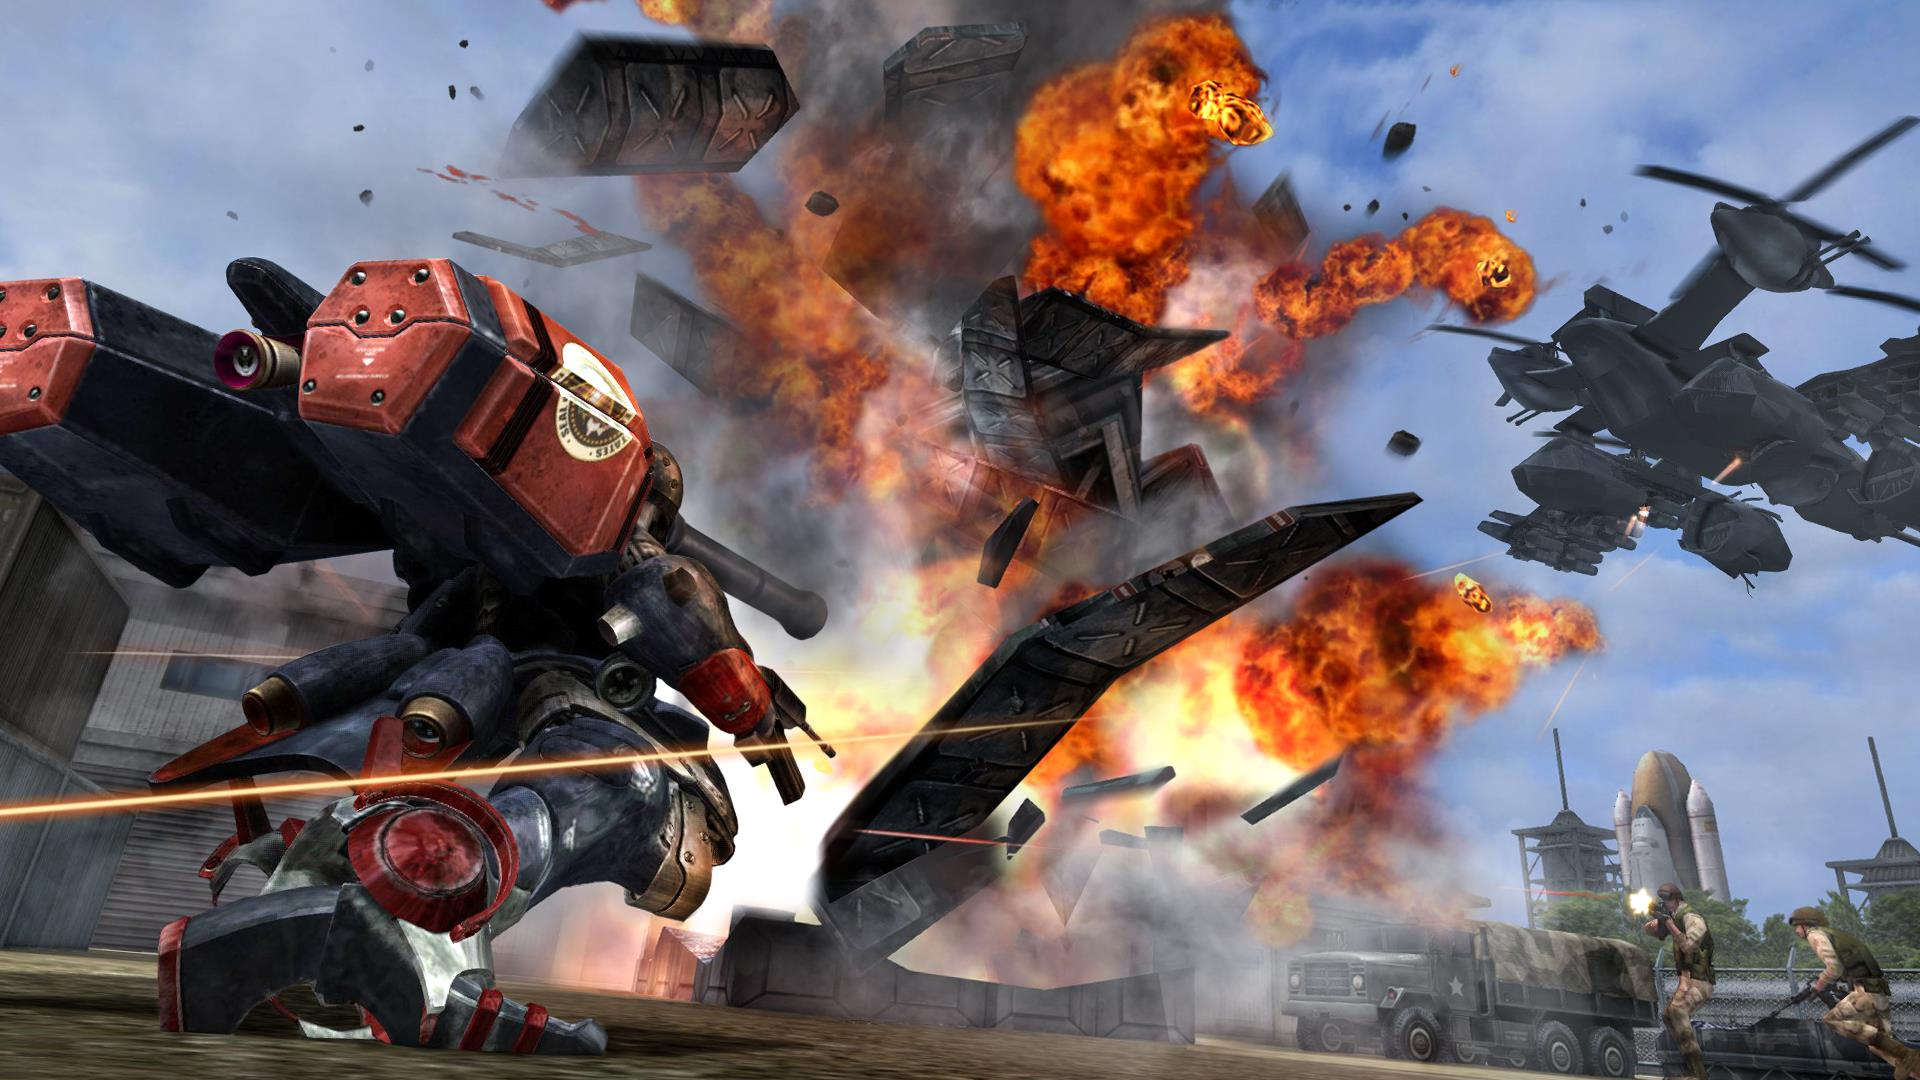 Review: Metal Wolf Chaos XD Plays Like a Vicious Indictment of Our